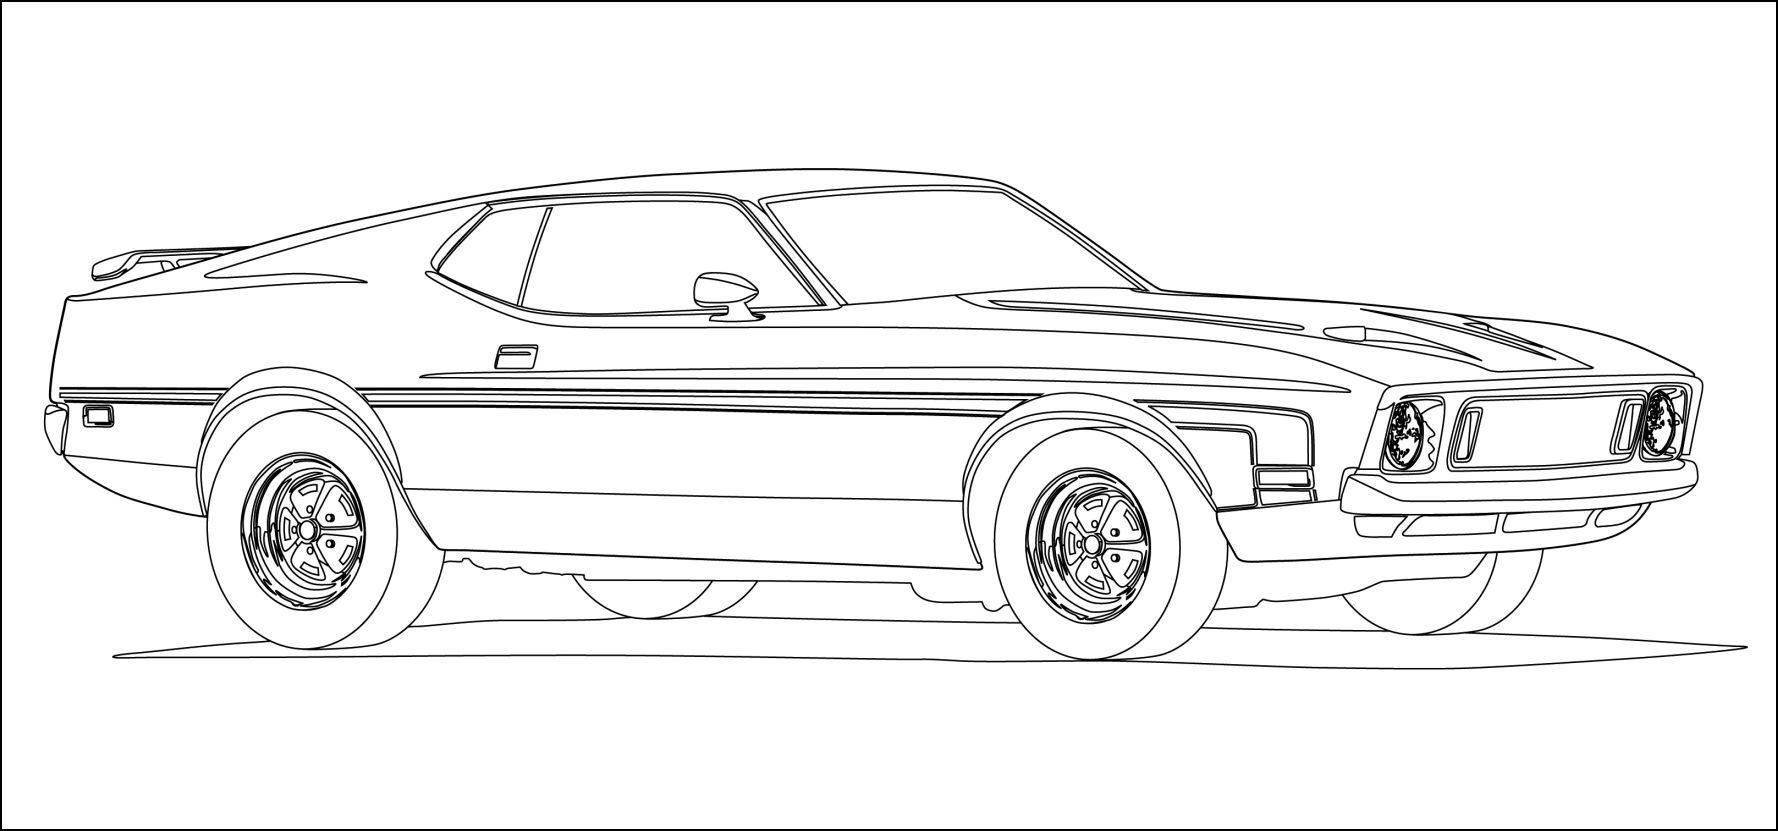 2011 Ford Mustang Coloring Pages 01 | Dibujos de autos | Pinterest ...